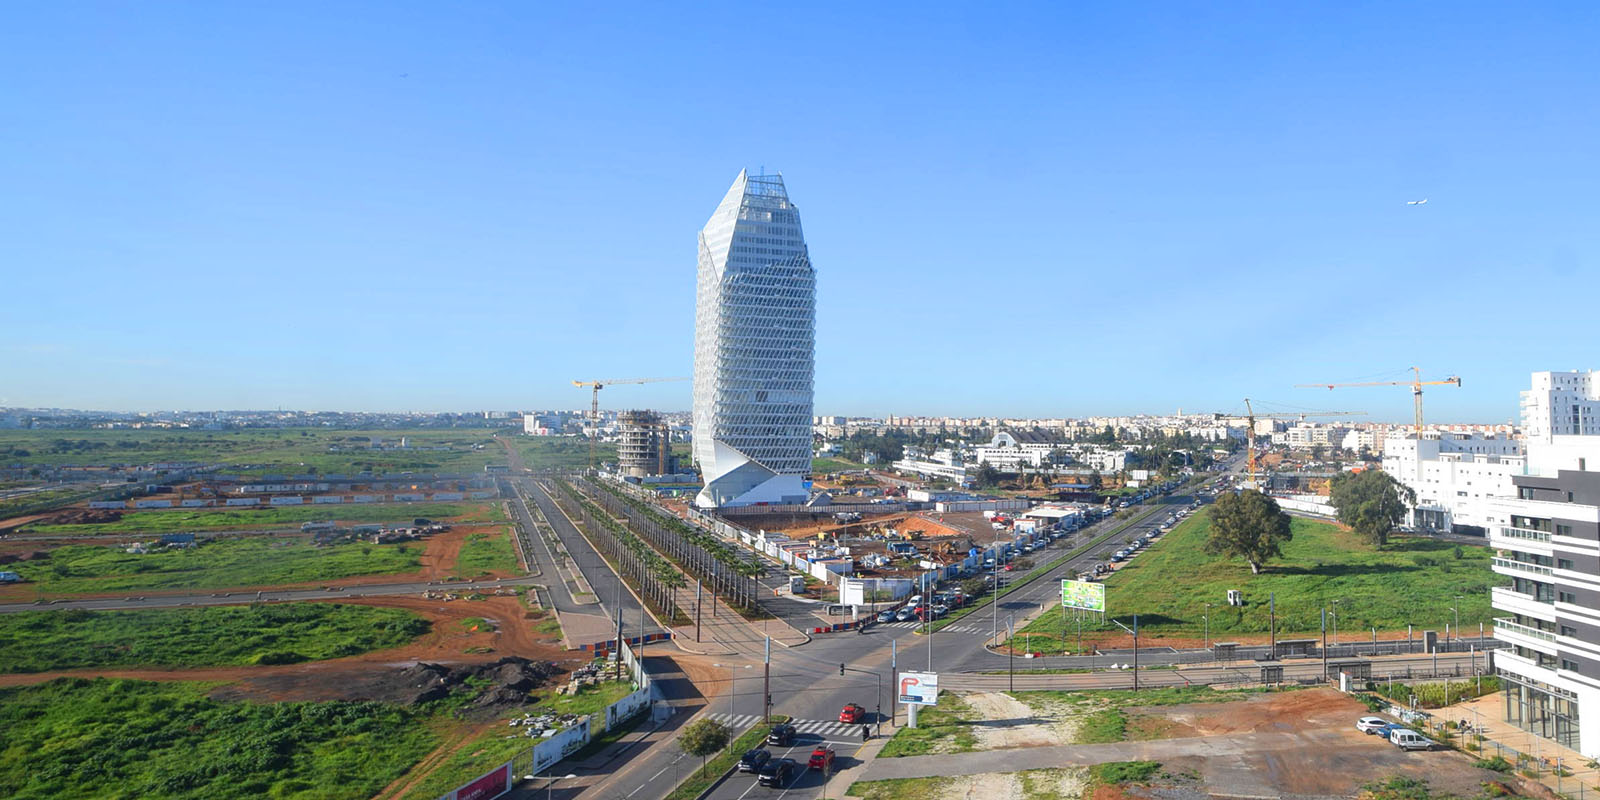 Casablanca Finance City sees promising growth prospects